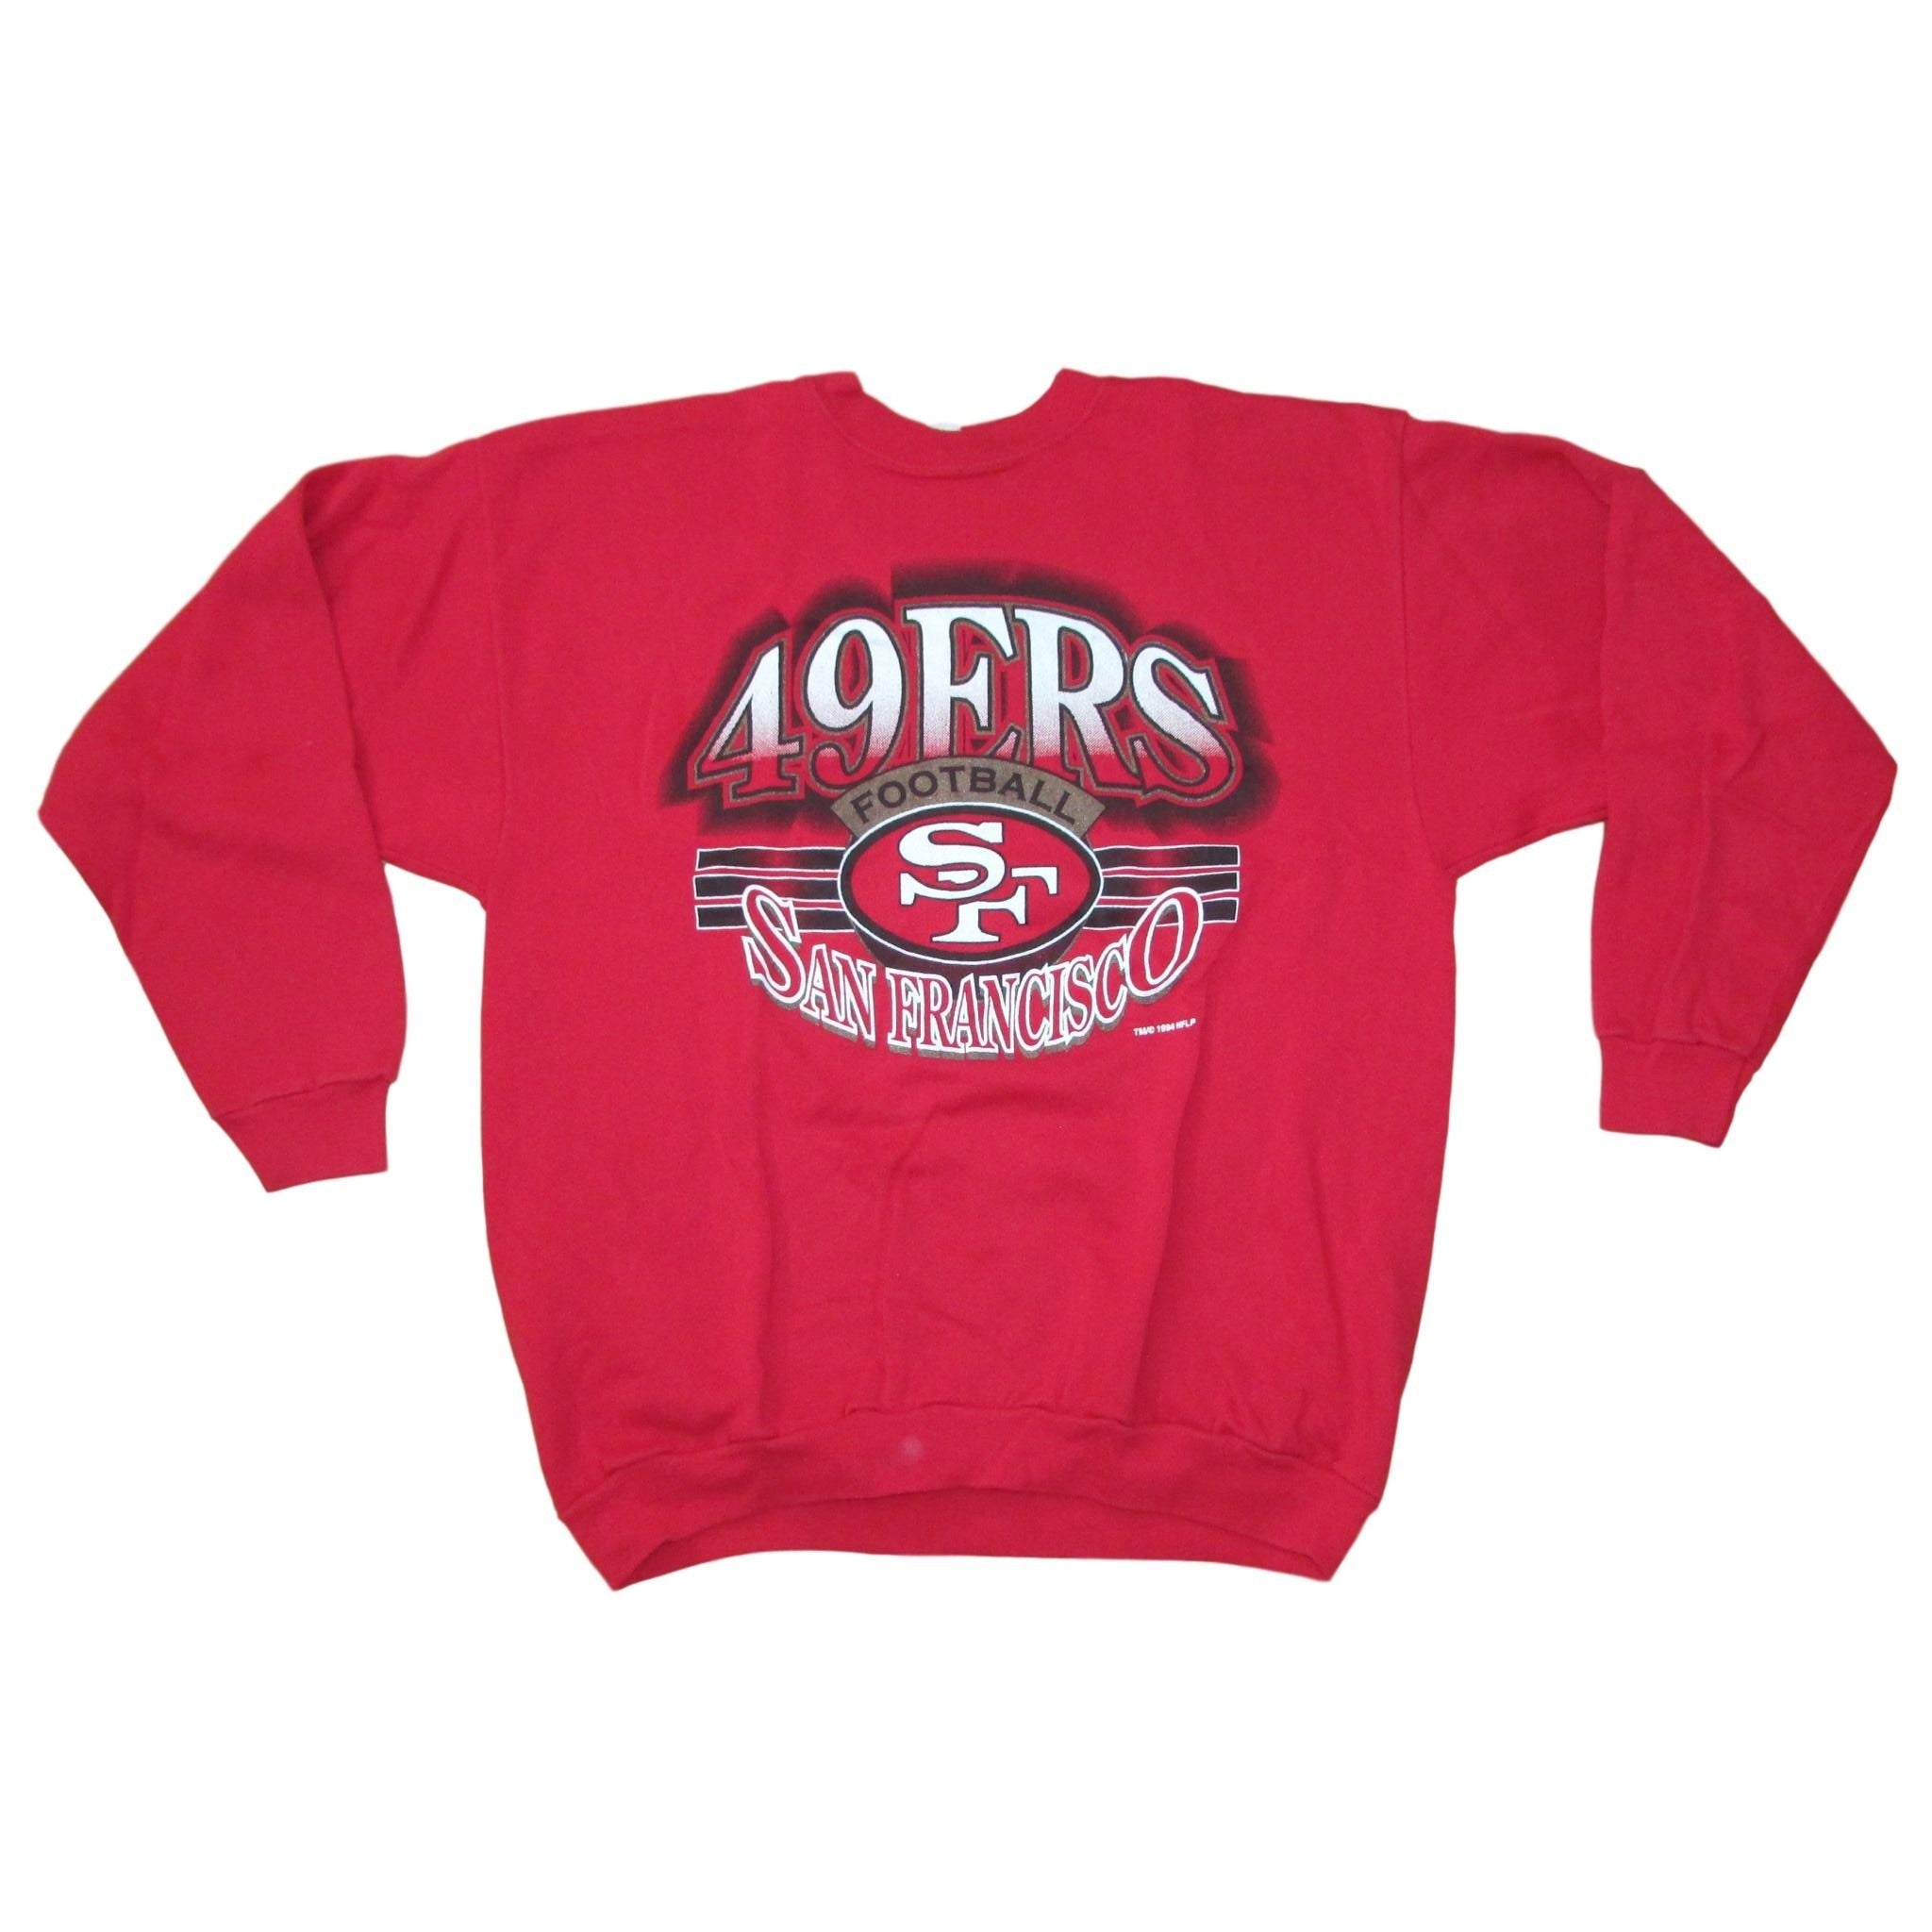 San Francisco 49ers Vintage Sweater by Spectator Sportswear Sz XL